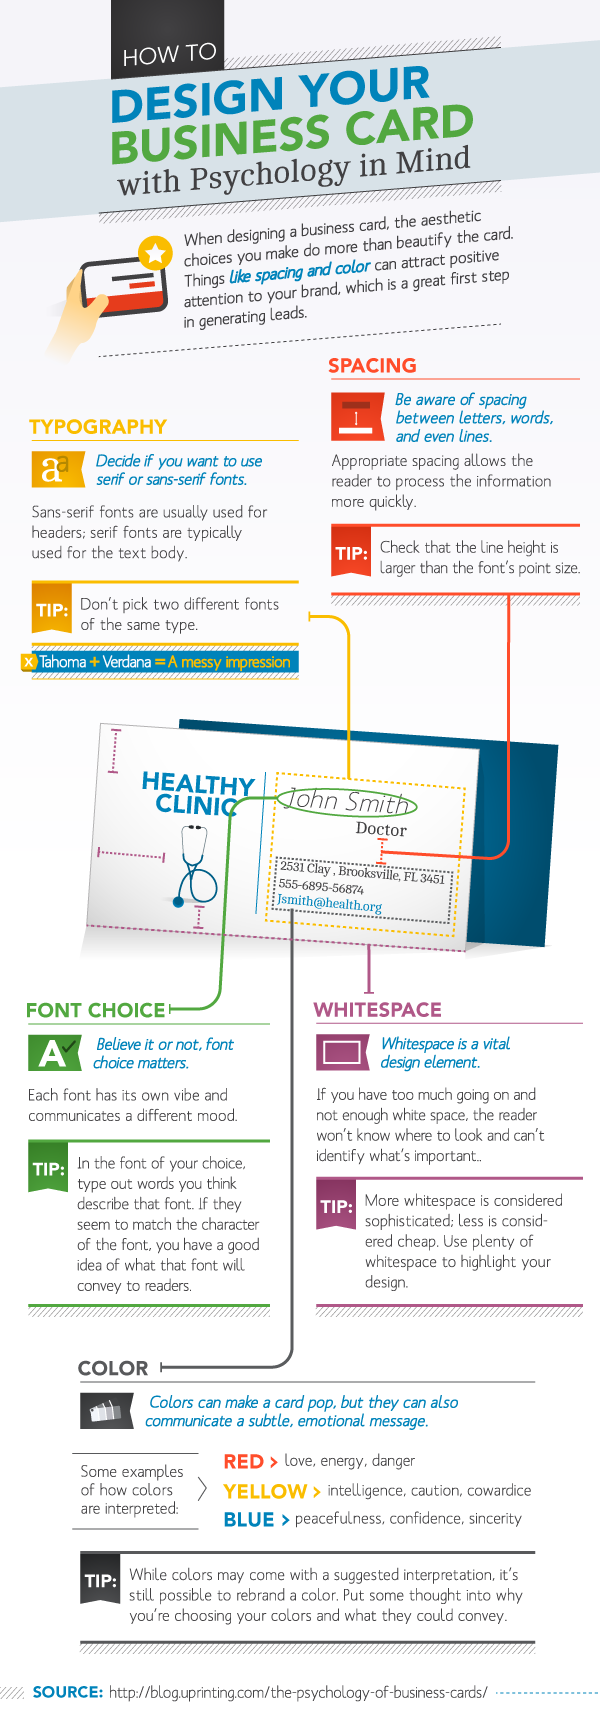 design your business card with psychology in mind11 Design Your Business Card with Psychology [Infographic]